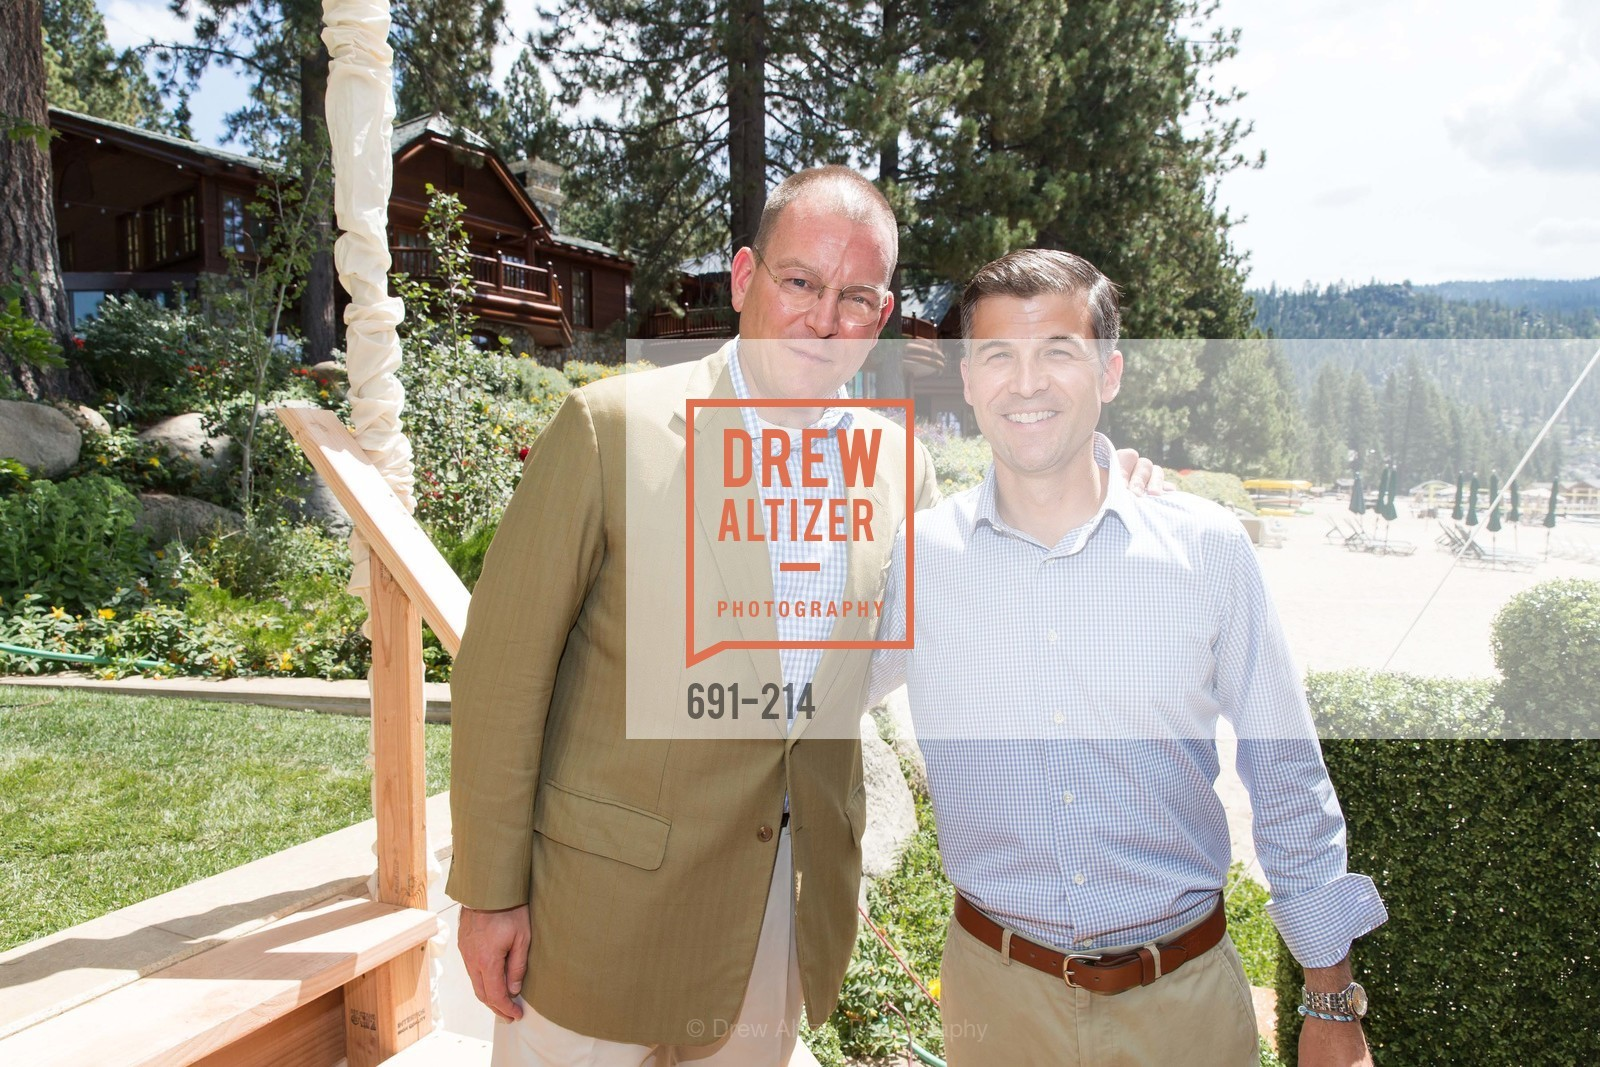 Alex Bolen, Ash Daggs, Saks Fifth Avenue and The League to Save Lake Tahoe Present Fashion on the Lake, Private Residence, August 1st, 2015,Drew Altizer, Drew Altizer Photography, full-service agency, private events, San Francisco photographer, photographer california